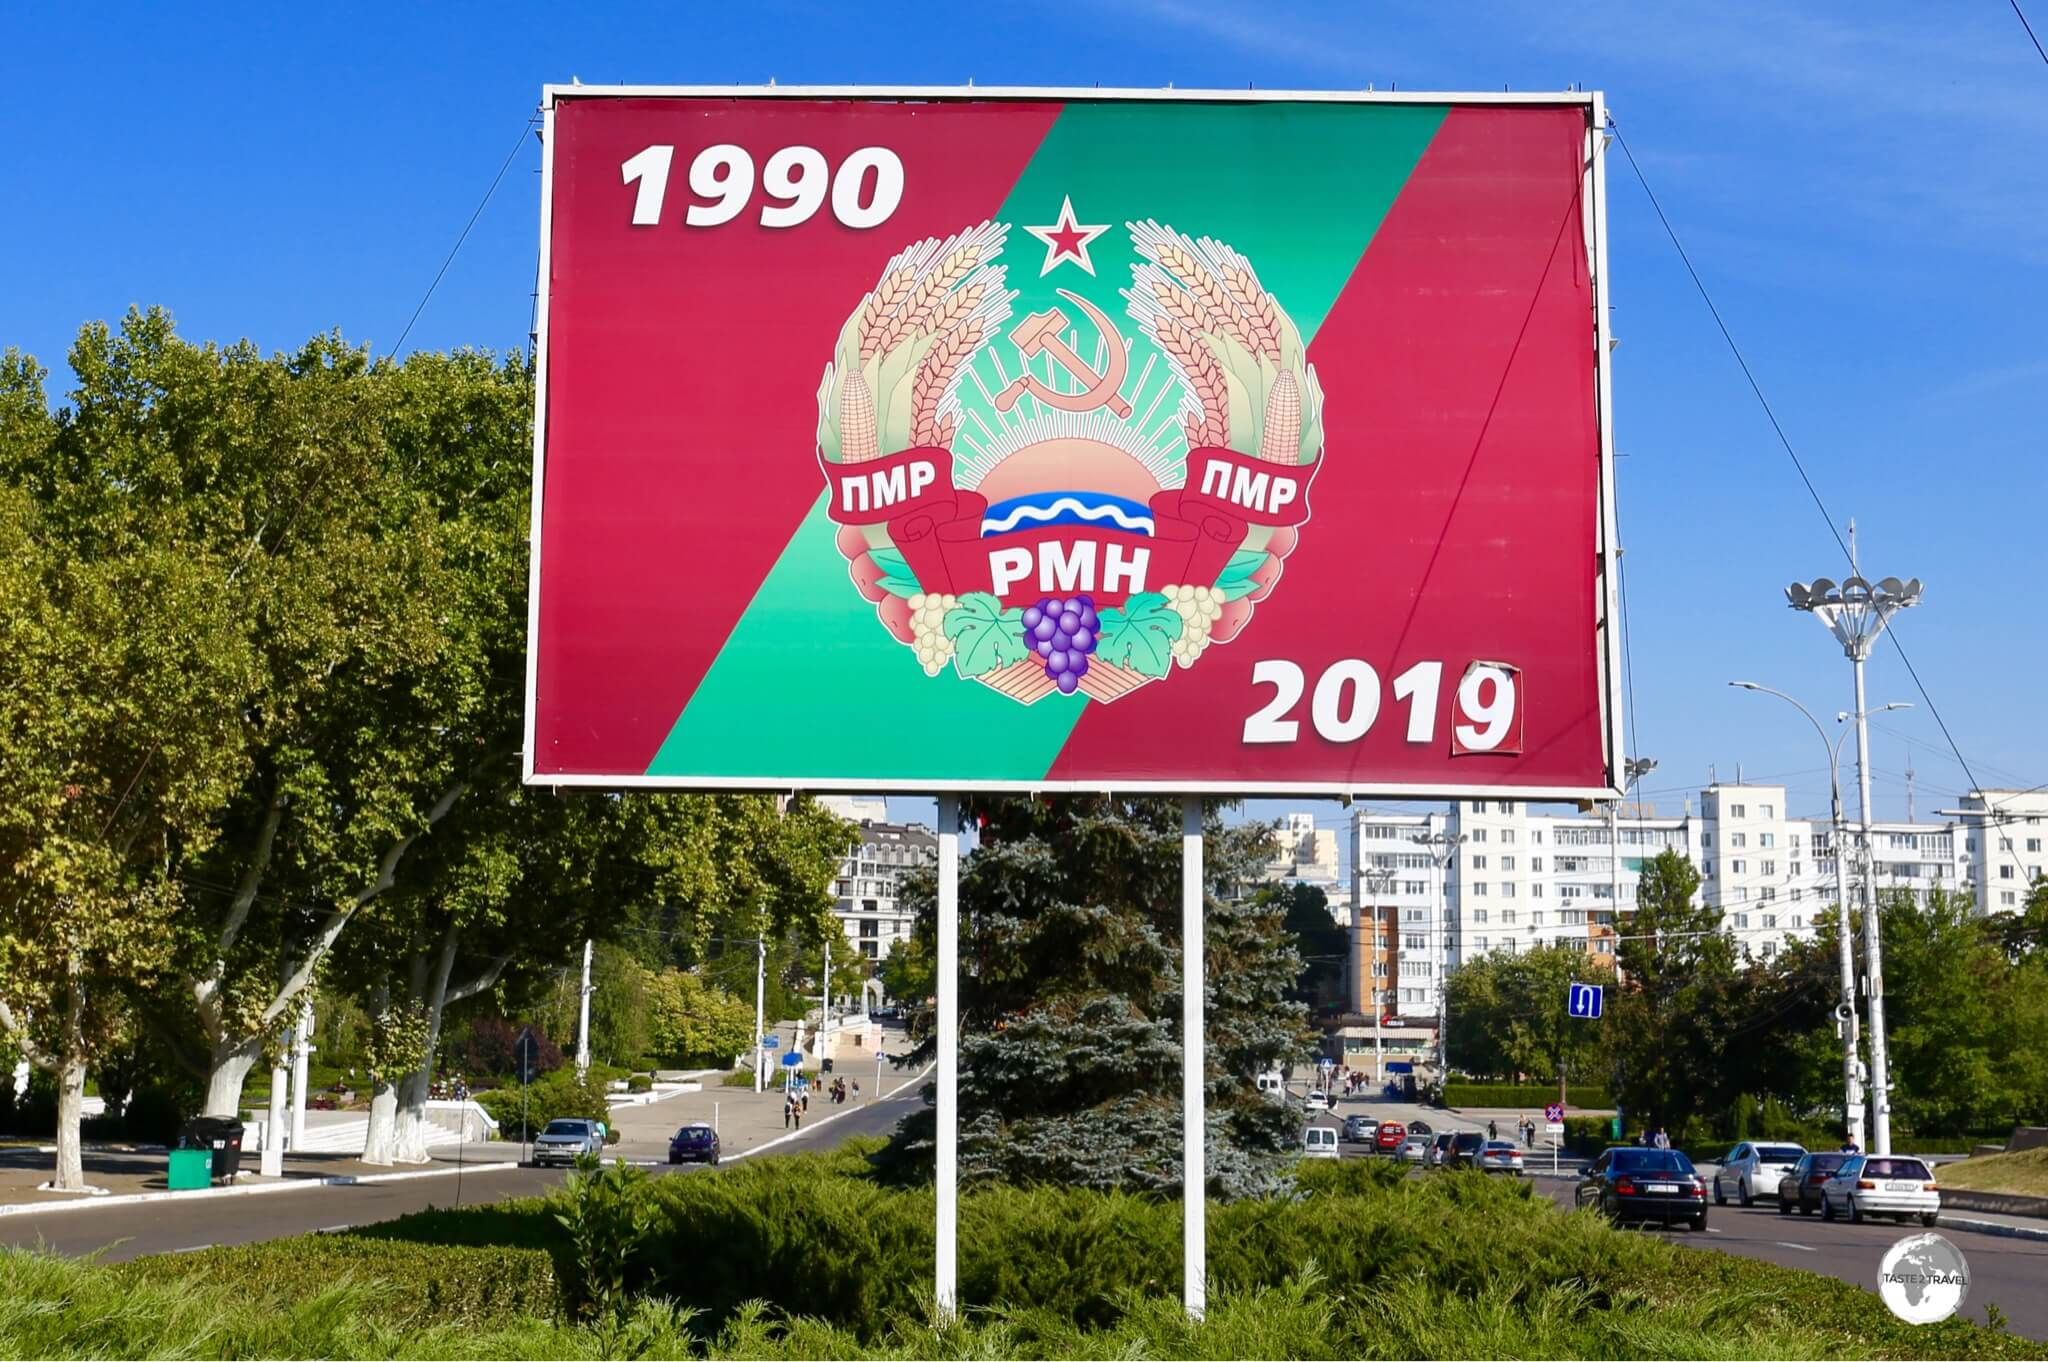 A billboard in Tiraspol commemorates 29 years of the Pridnestrovian Moldavian Republic (PMR).